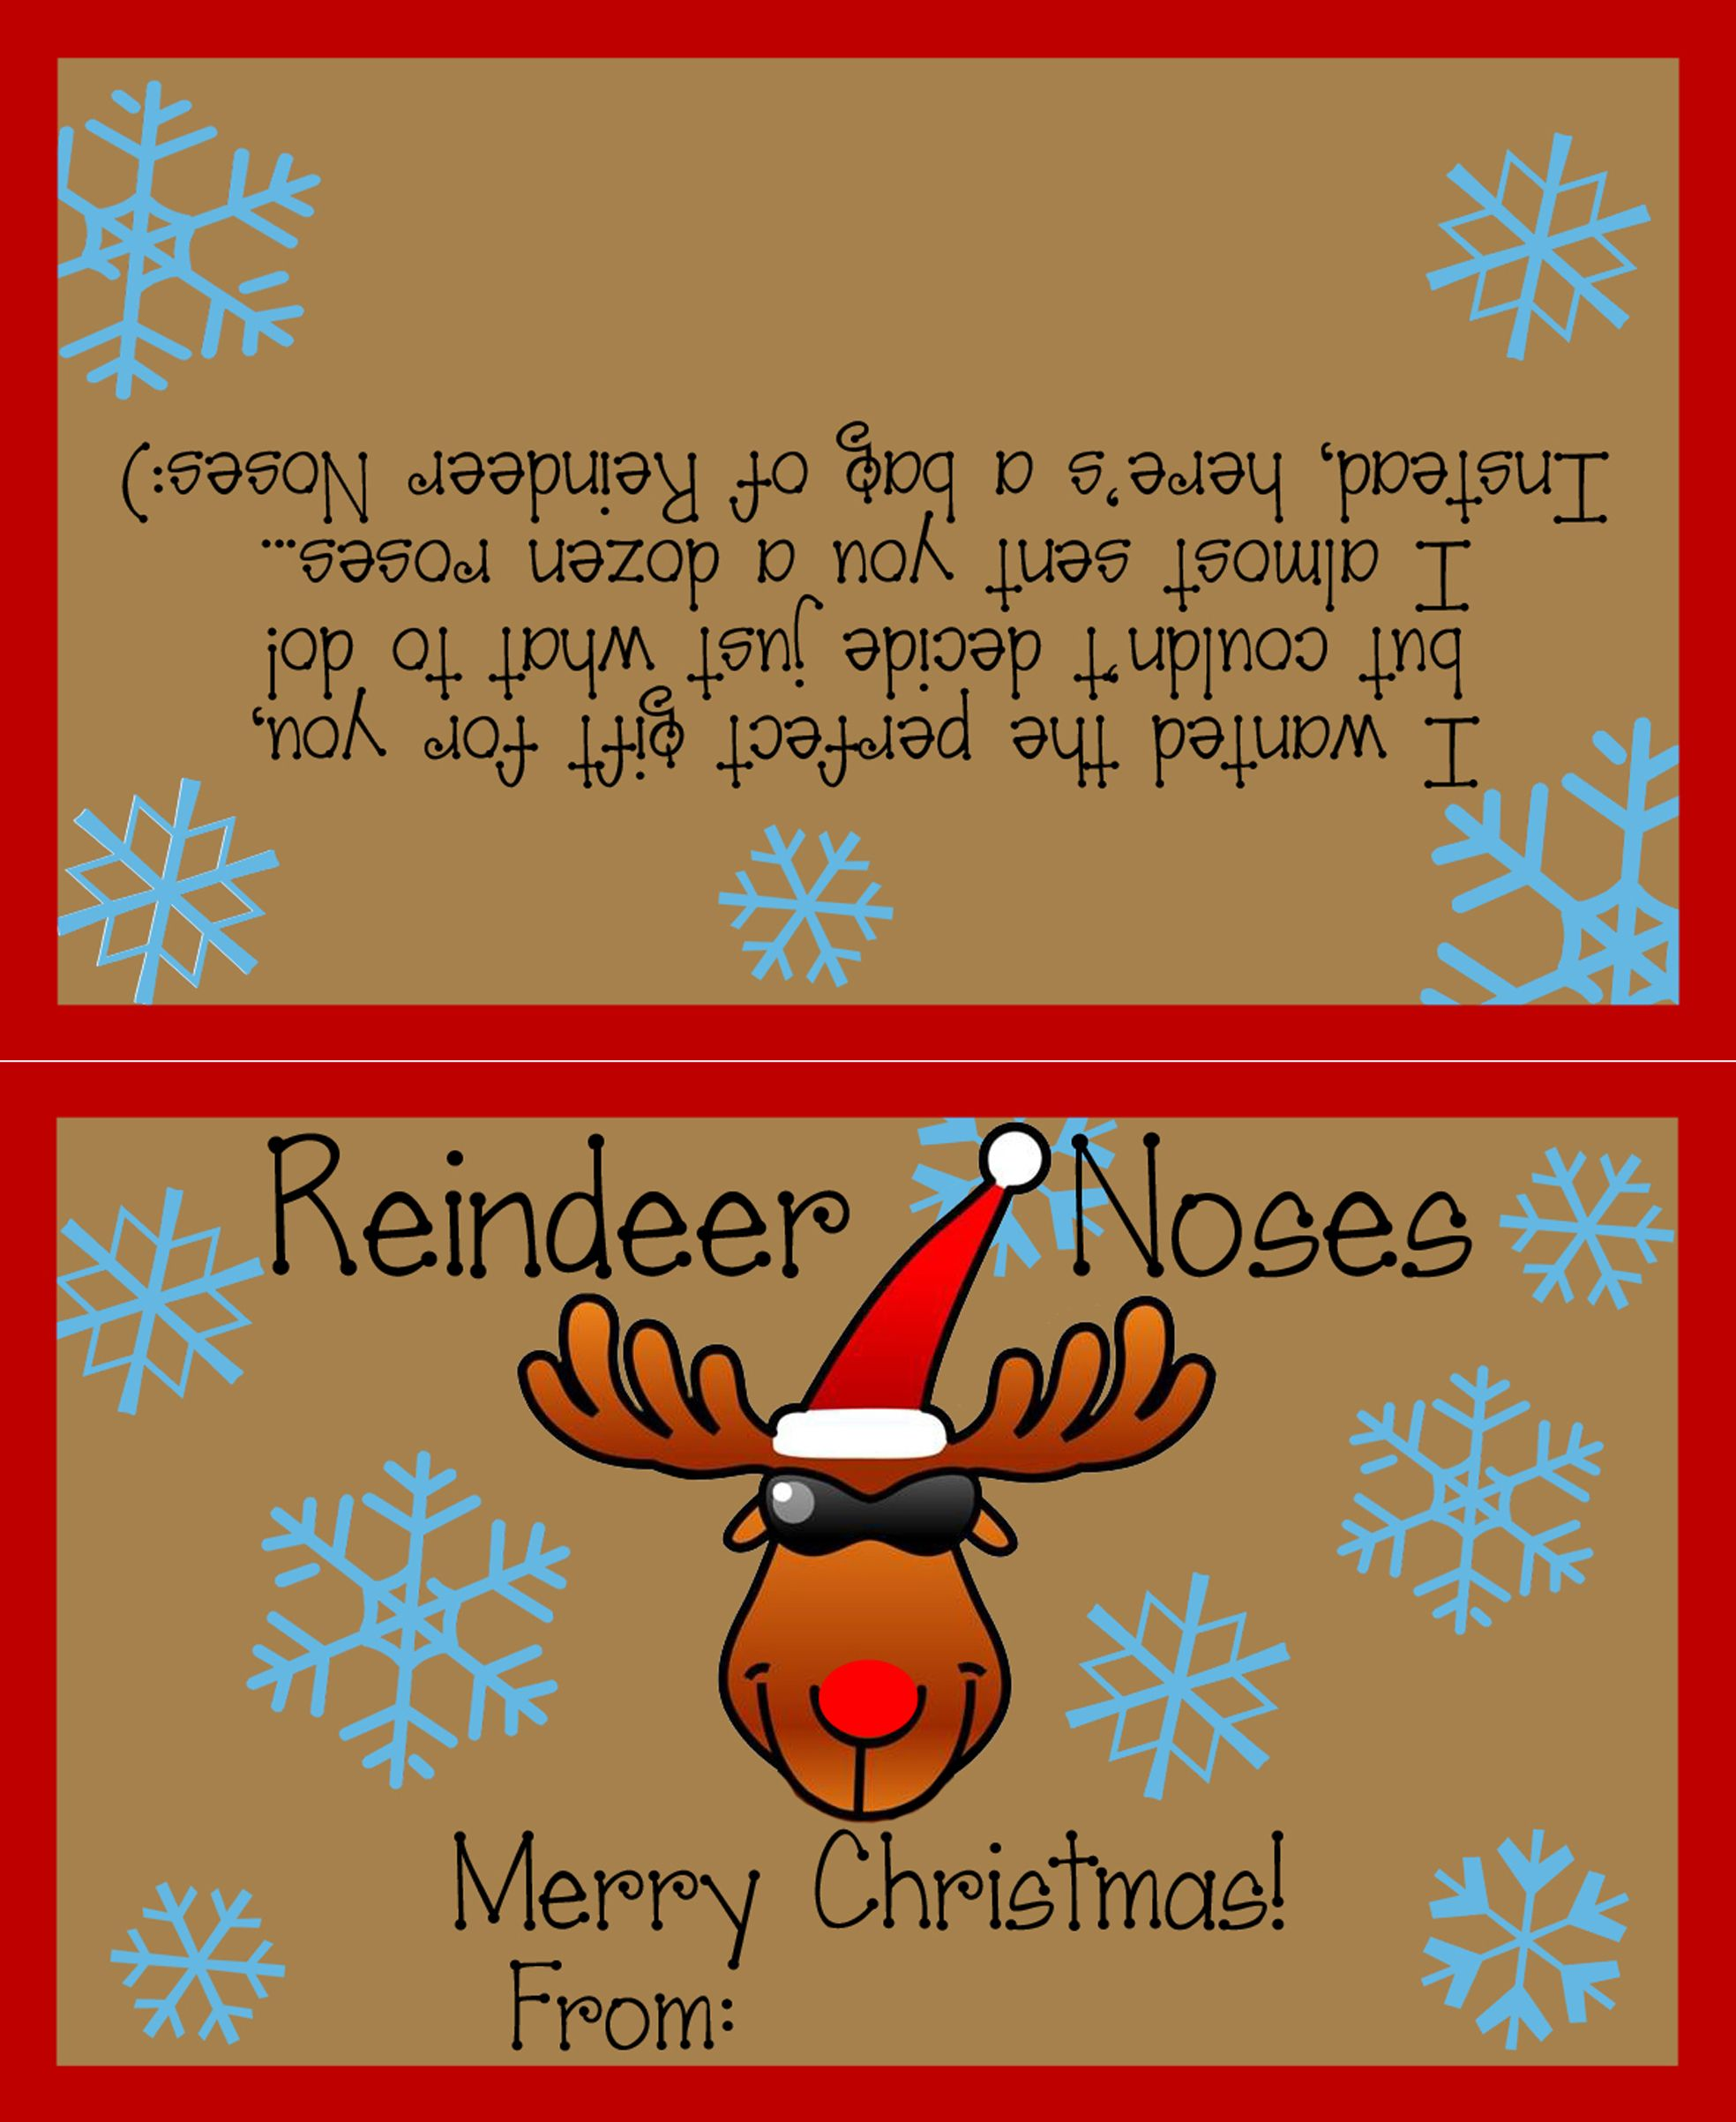 Pin by Kathleen Anderson on Christmas | Pinterest